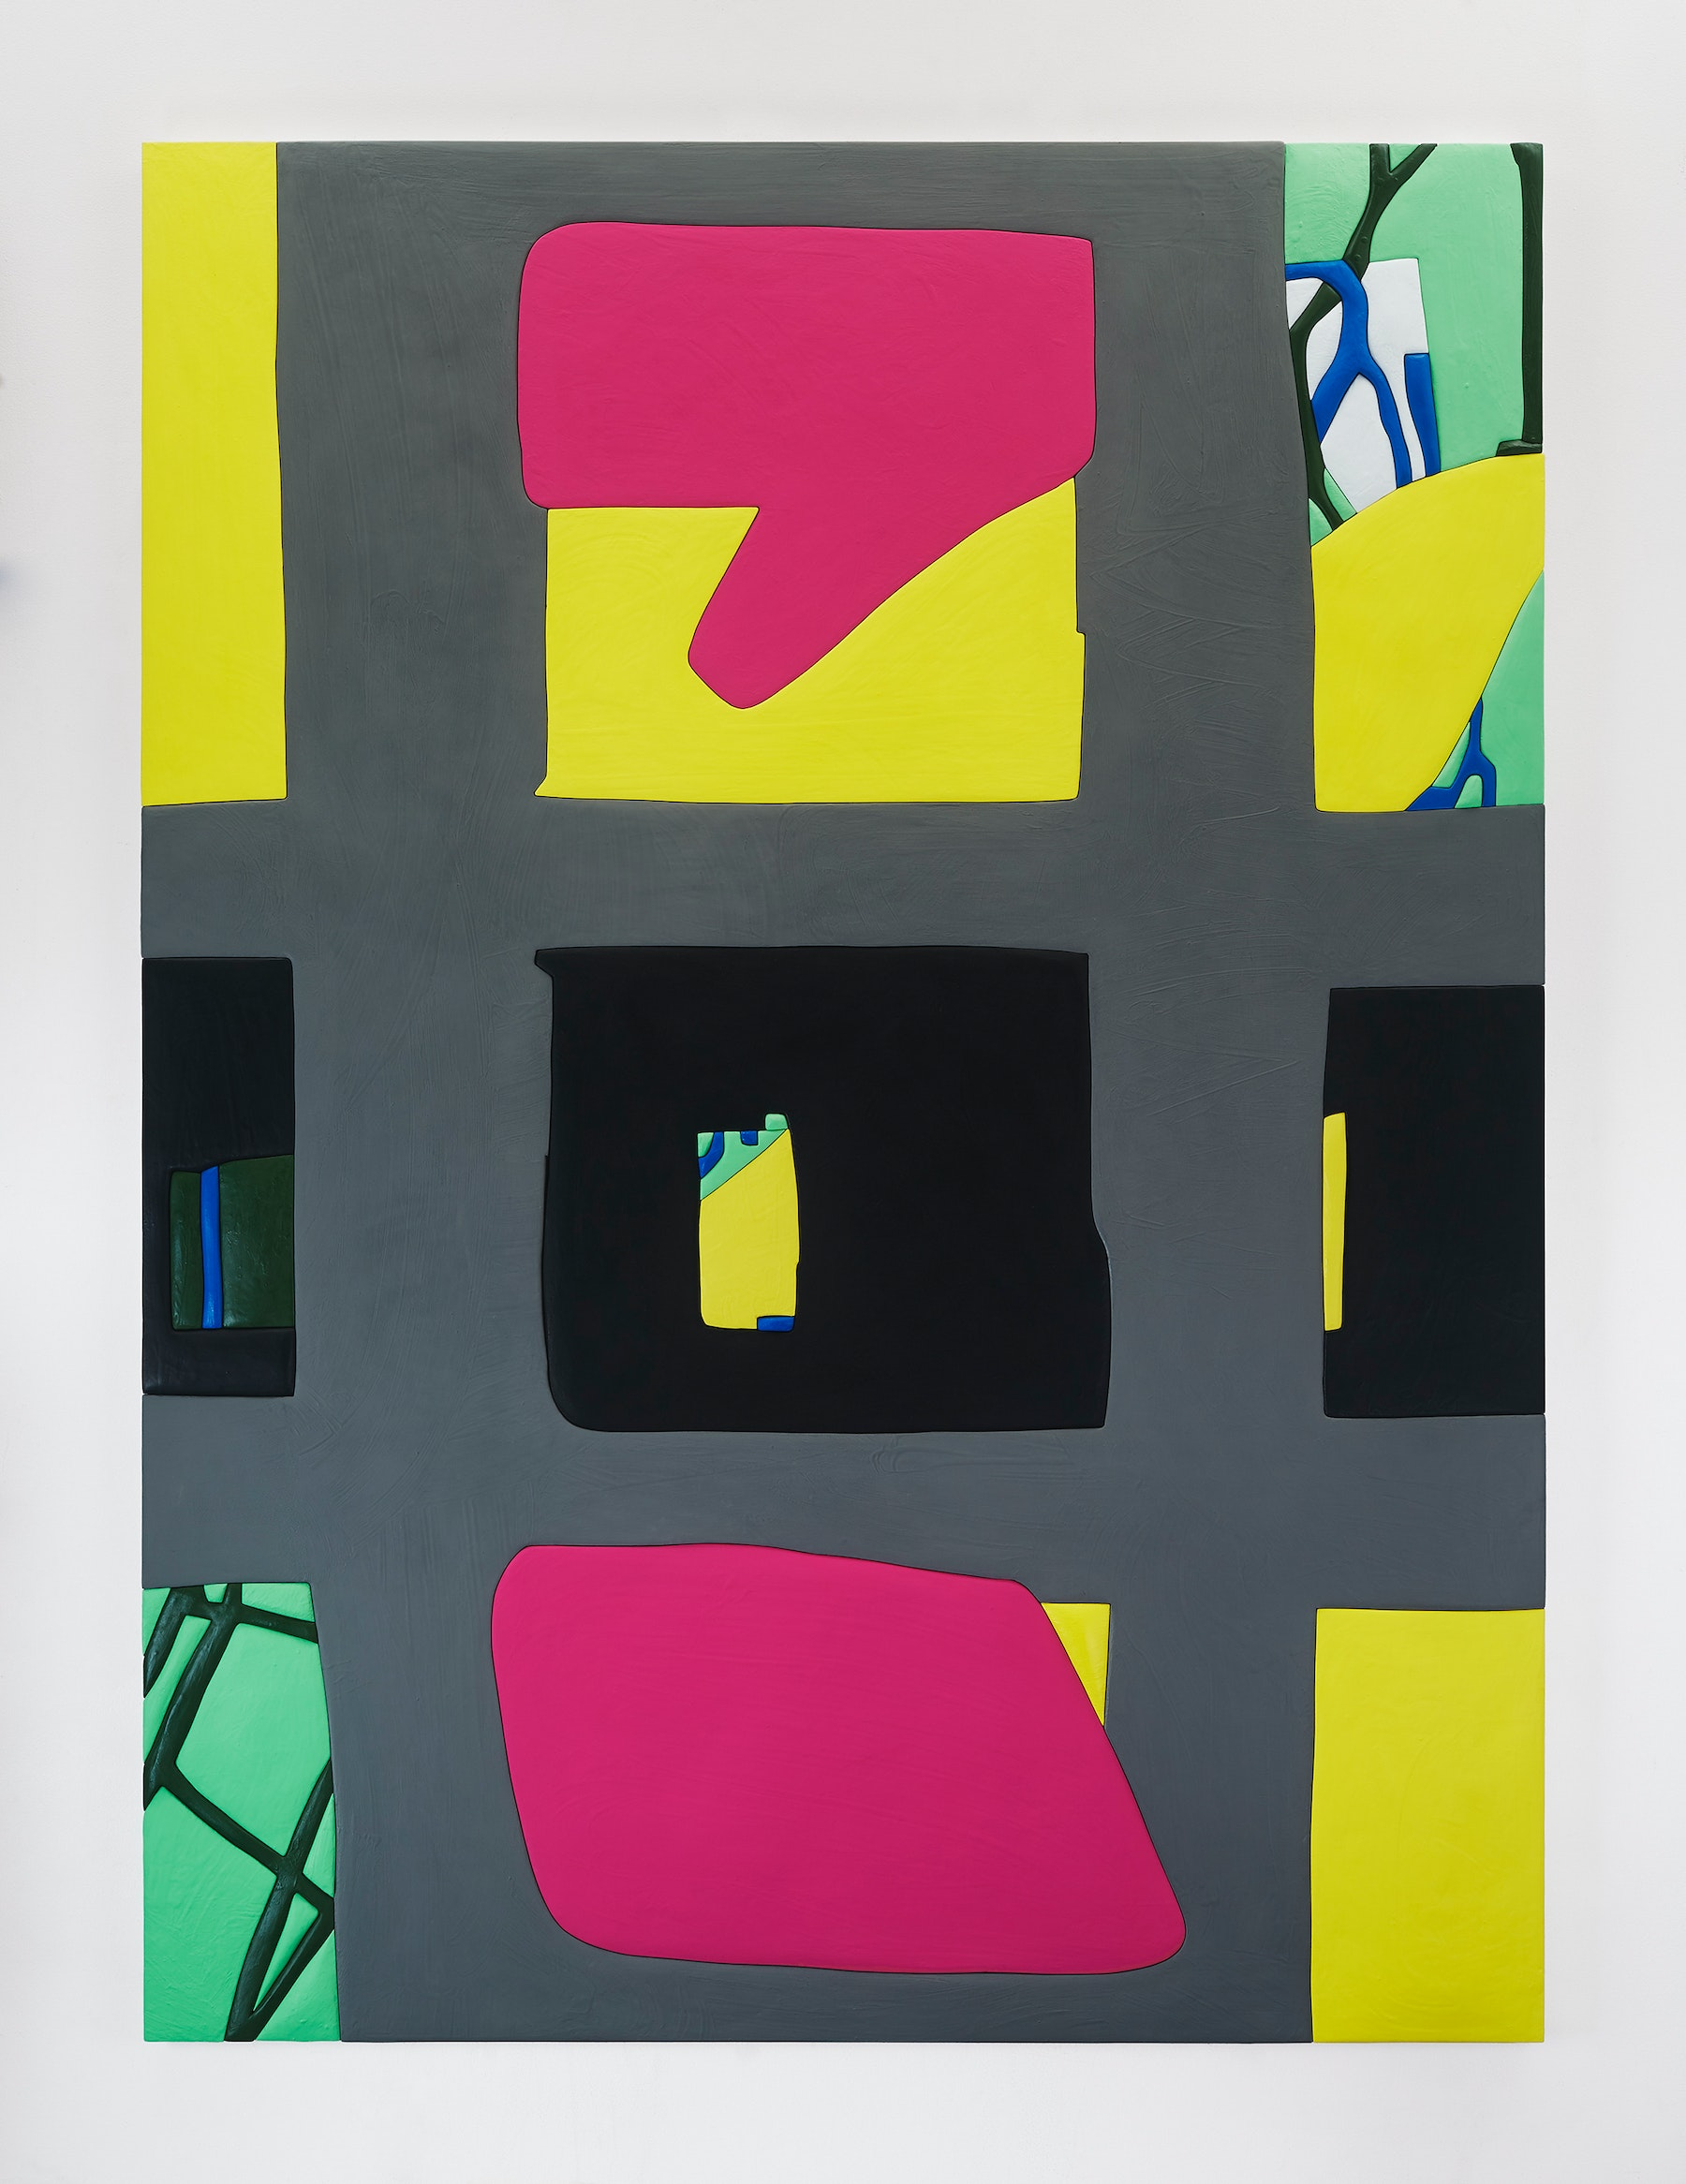 "Sadie Benning ""Untitled 6,"" 2019 Wood, aqua resin, casein, and acrylic gouache 80 x 59"" [HxW] (203.2 x 149.86 cm) Inventory #BEN860 Courtesy of the artist and Vielmetter Los Angeles Photocredit: Chris Austin"